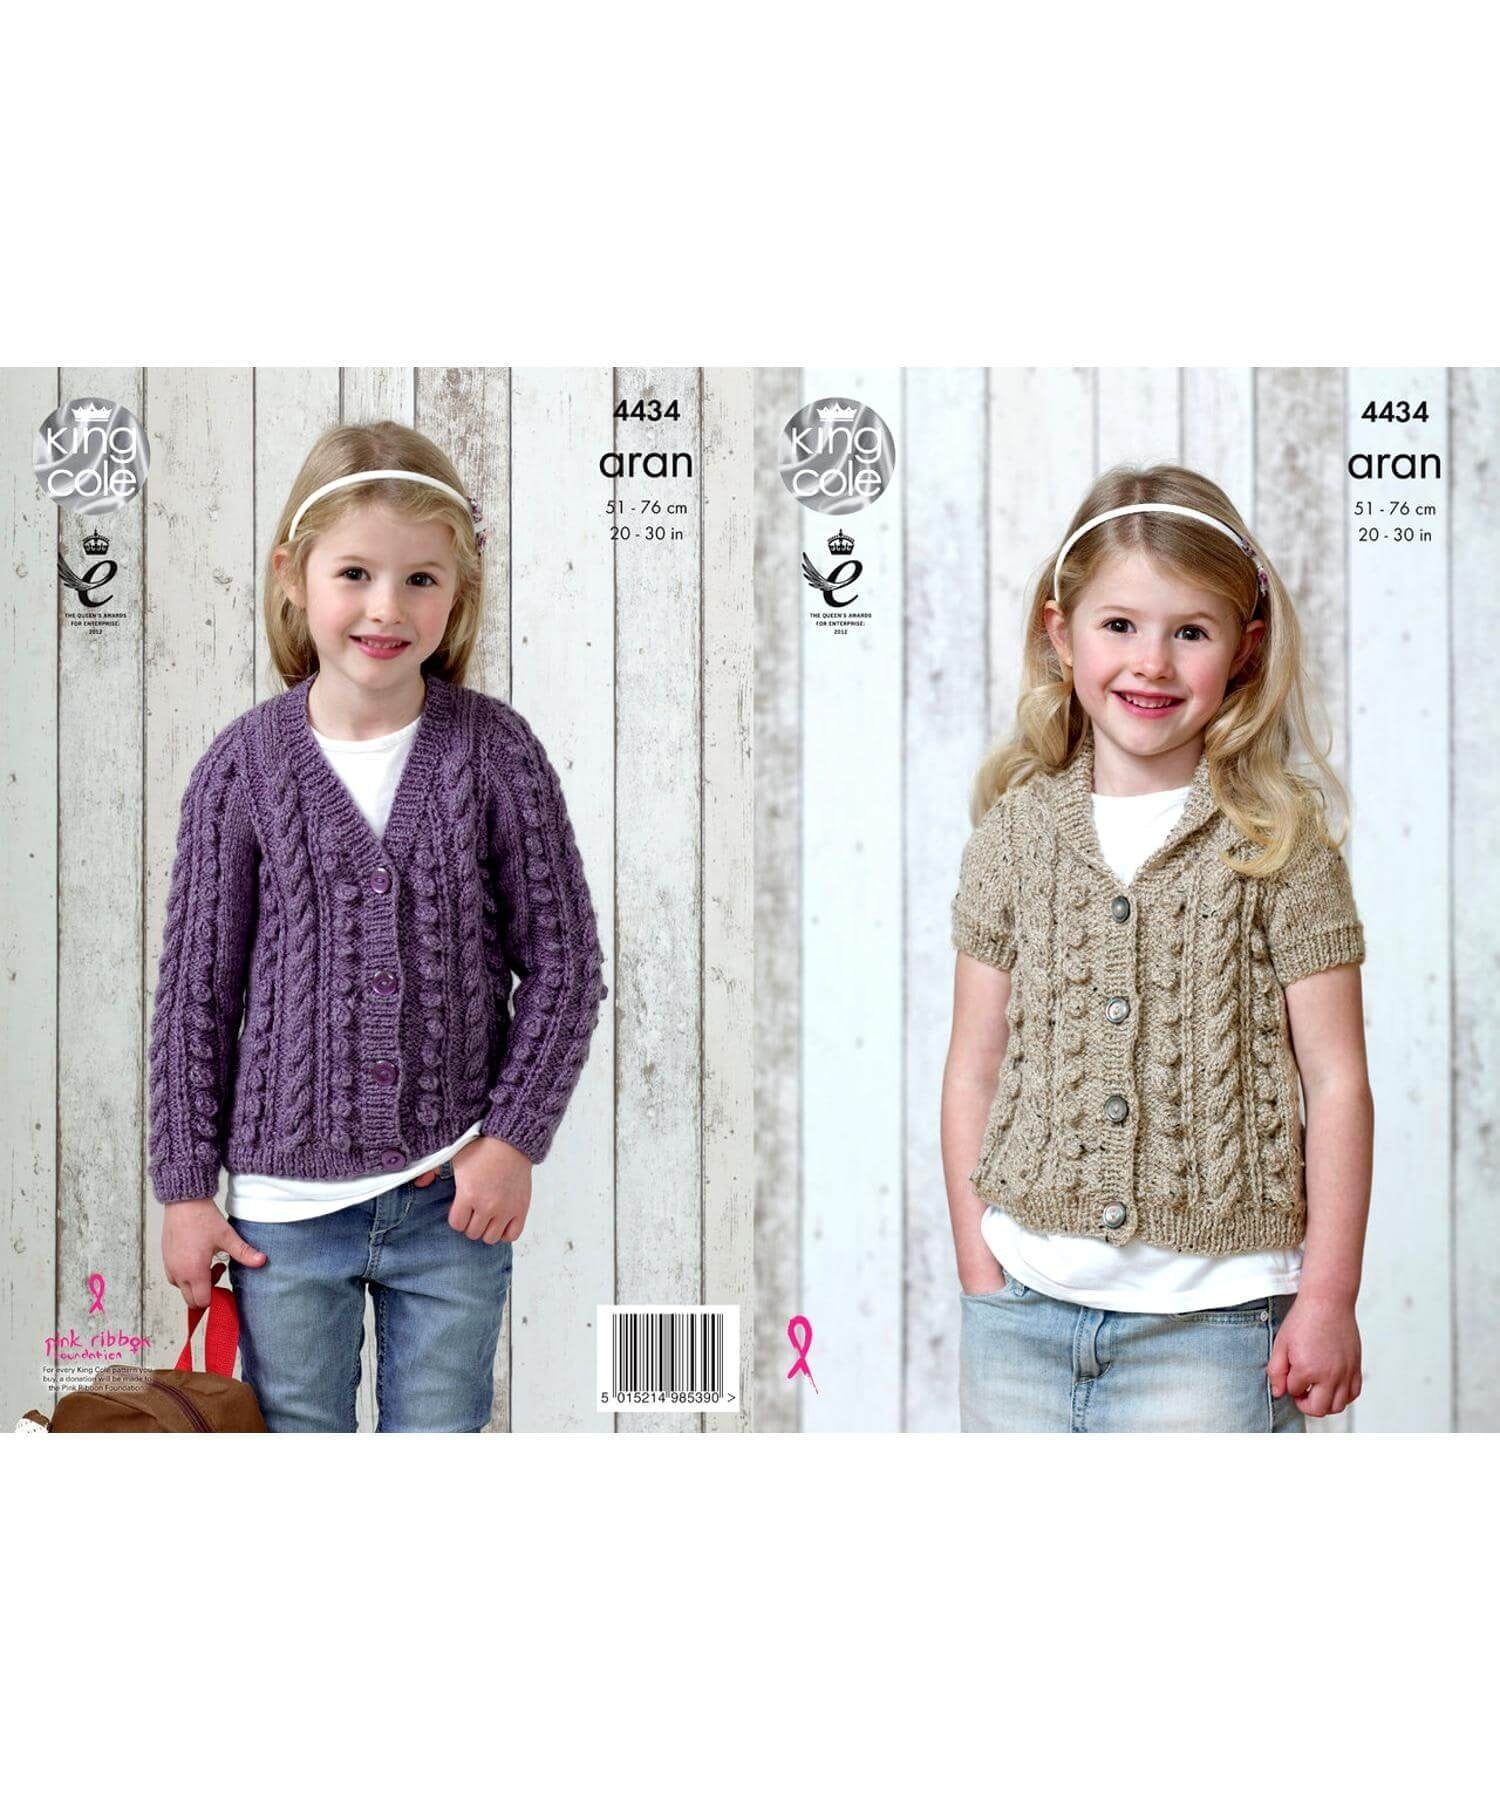 King Cole Aran Pattern 4434 - [Springwools] - Knitting - Irish Gifts